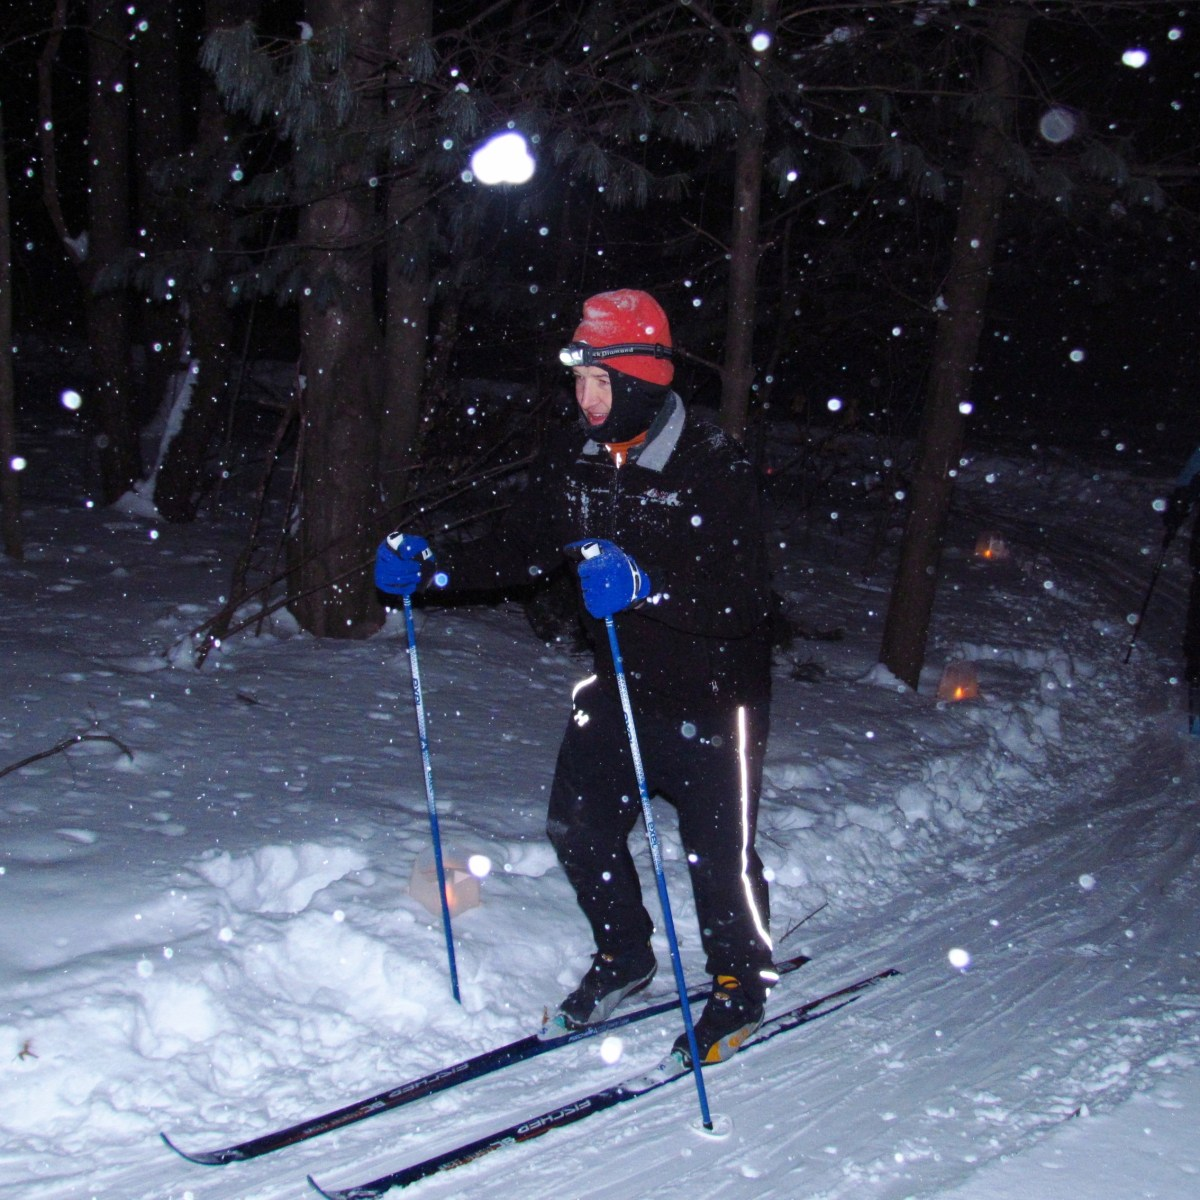 A pair of cross-country skiers ski in the dark night as snow falls